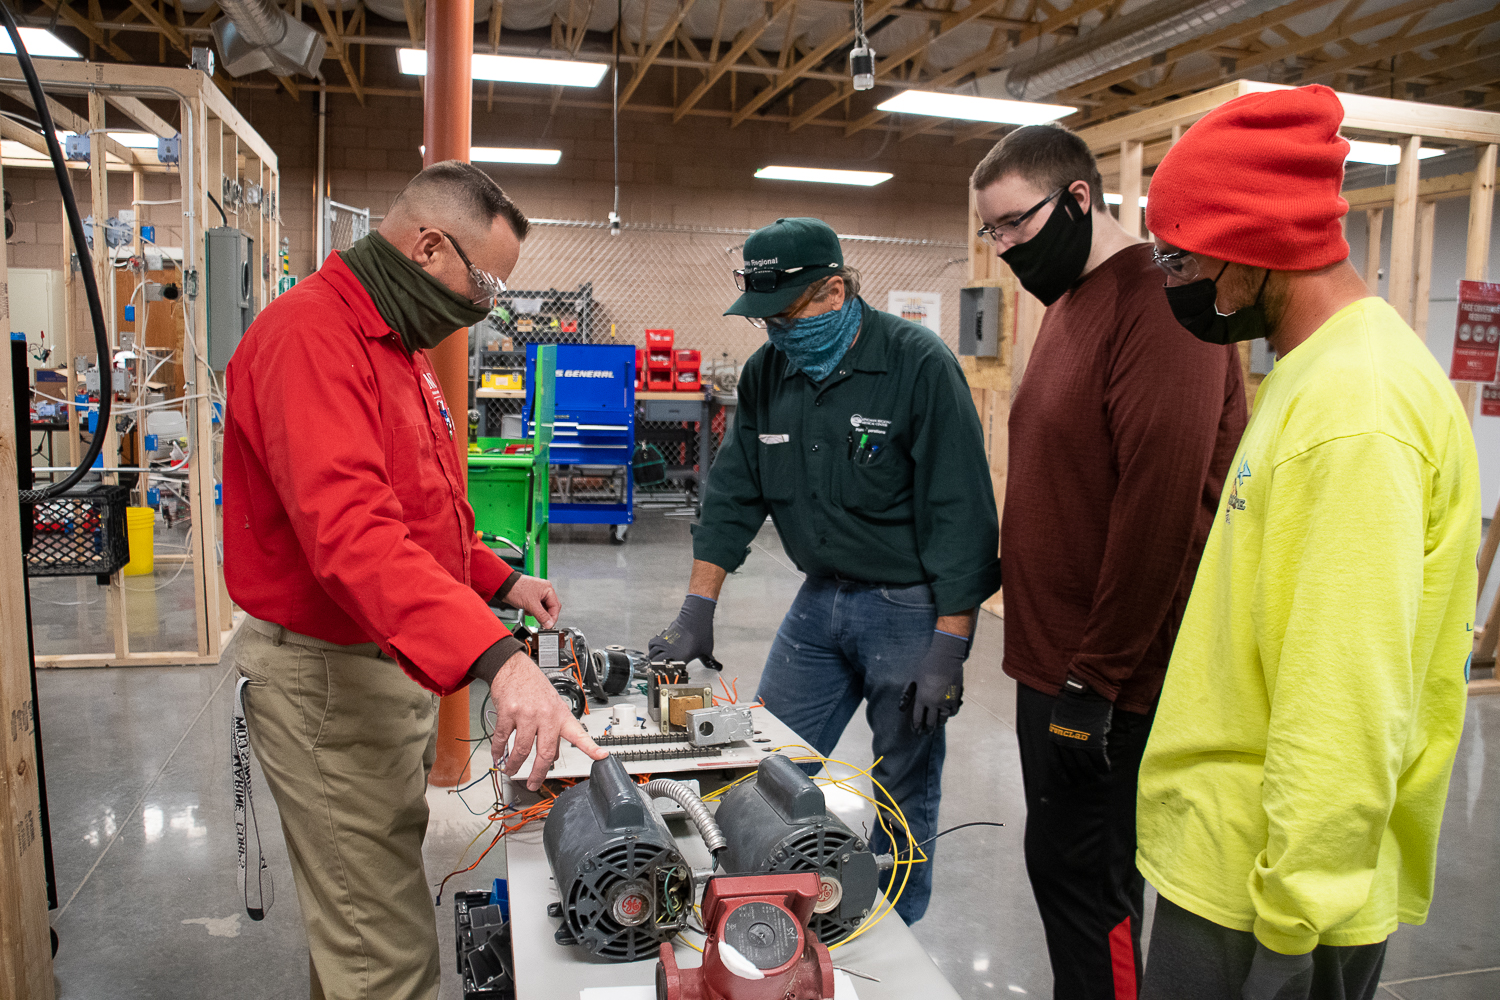 MCC Electrical Technology Instructor Michael McKenzie (left) teaching students on the Neal Campus in Kingman.  Electrical Technology is one of many skilled trades that would be based out of the new Advanced Manufacturing Training Center.